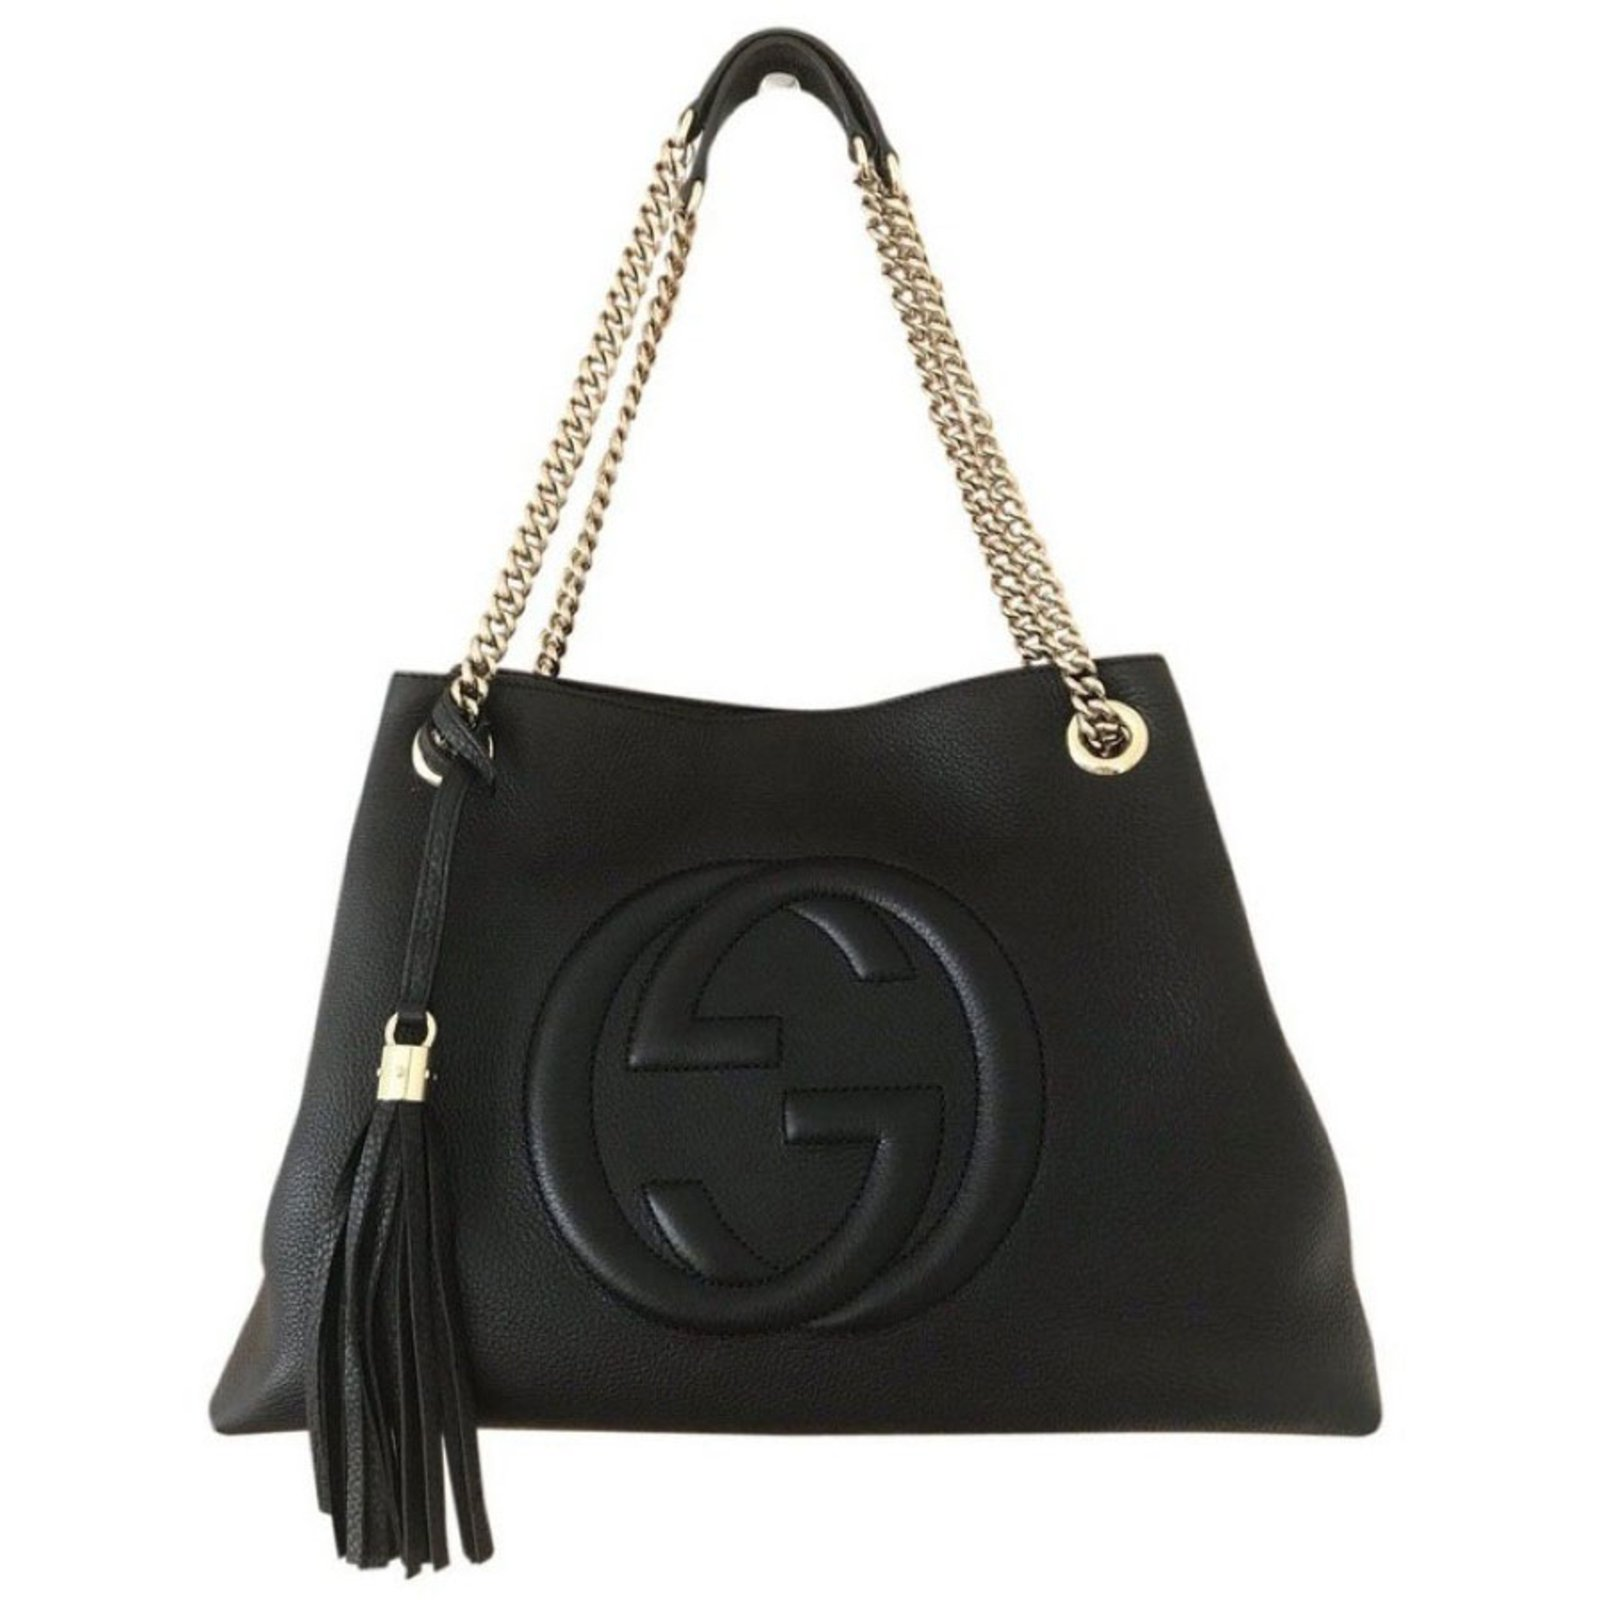 Gucci Soho Handbags Leather Black Ref 84570